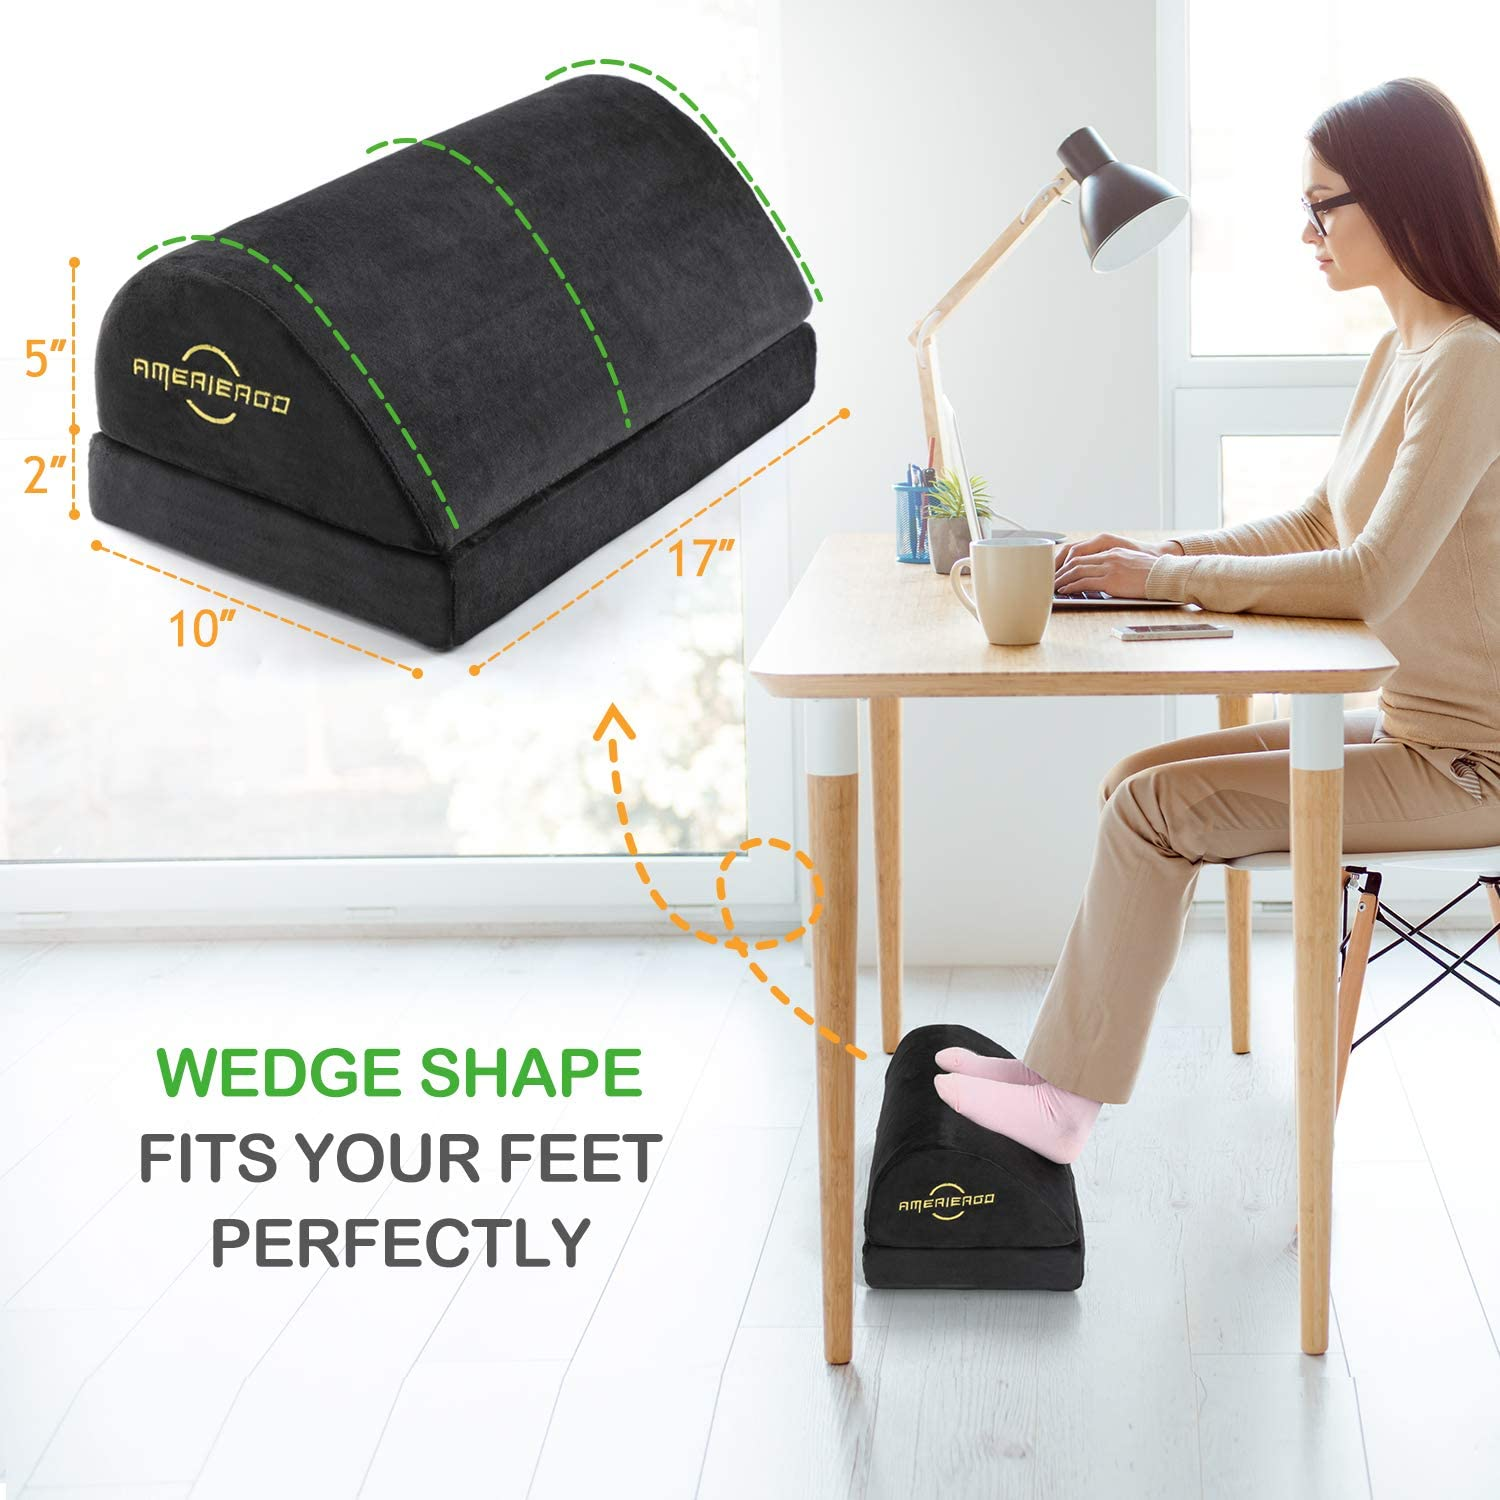 AMERIERGO Adjustable Under Desk Foot Rest - Office Desk Foot Rest with 2 Adjustable Heights, Ergonomic Foot Rest for Back & Knee Pain Relief, Foot Rest Cushion with Fabric Breathable Washable Cover : Office Products